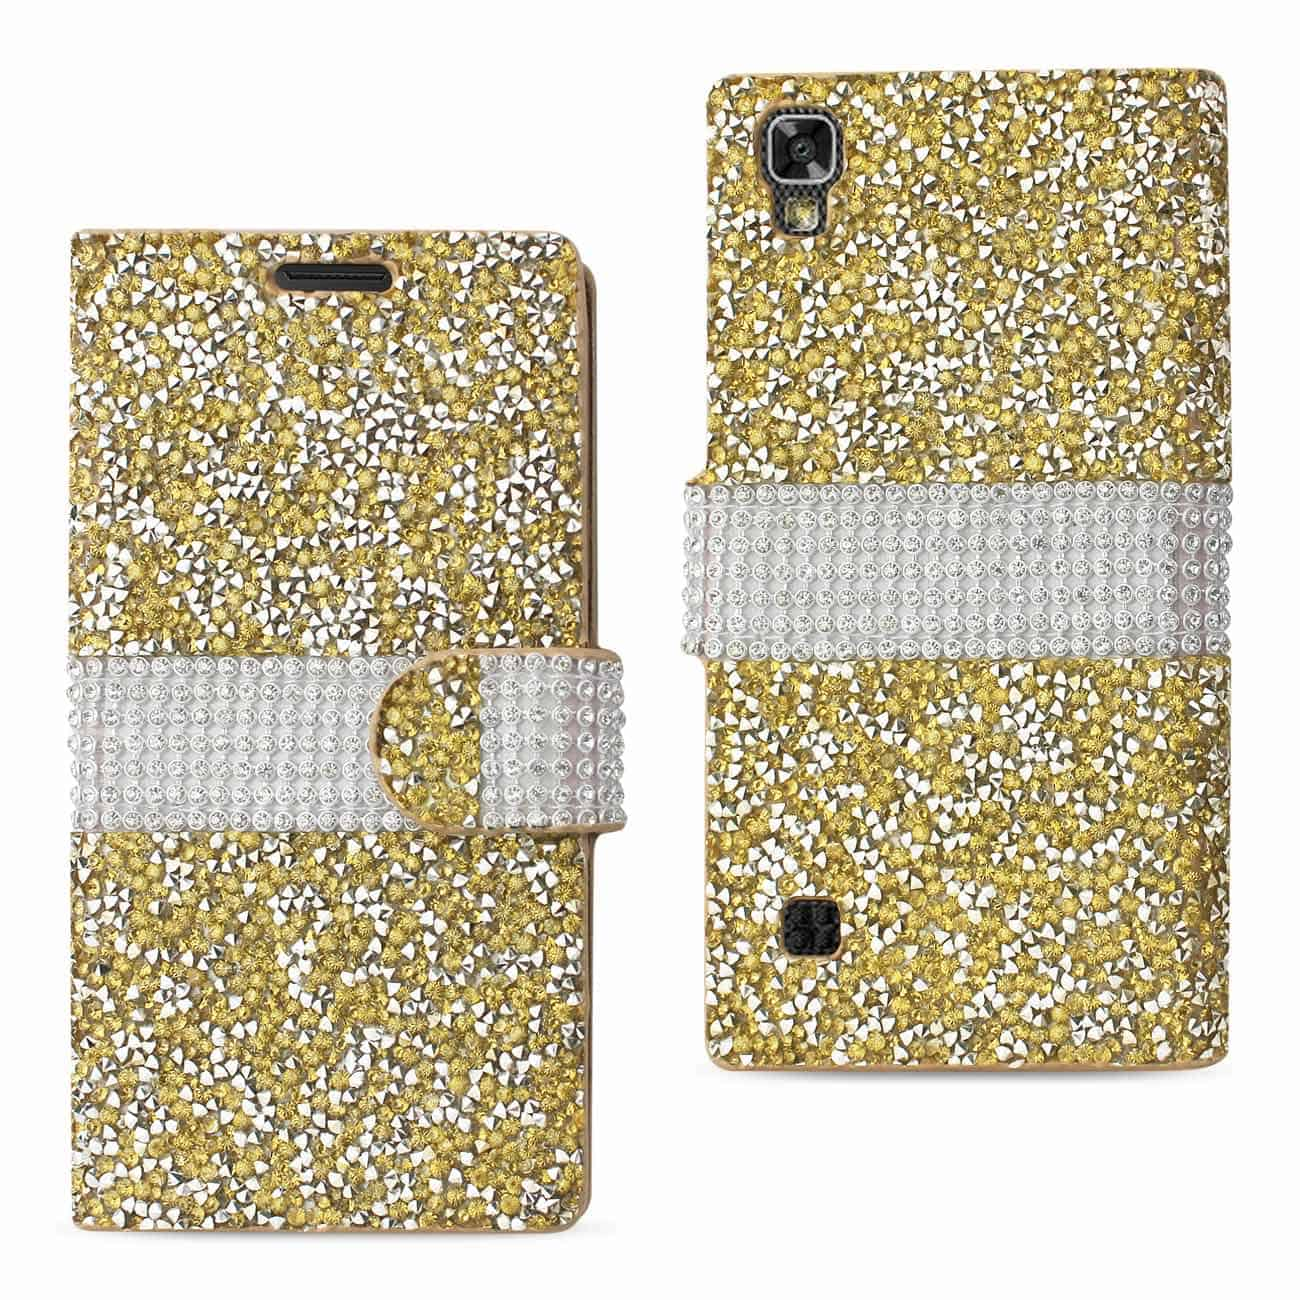 LG X POWER/ K6 DIAMOND RHINESTONE WALLET CASE IN GOLD